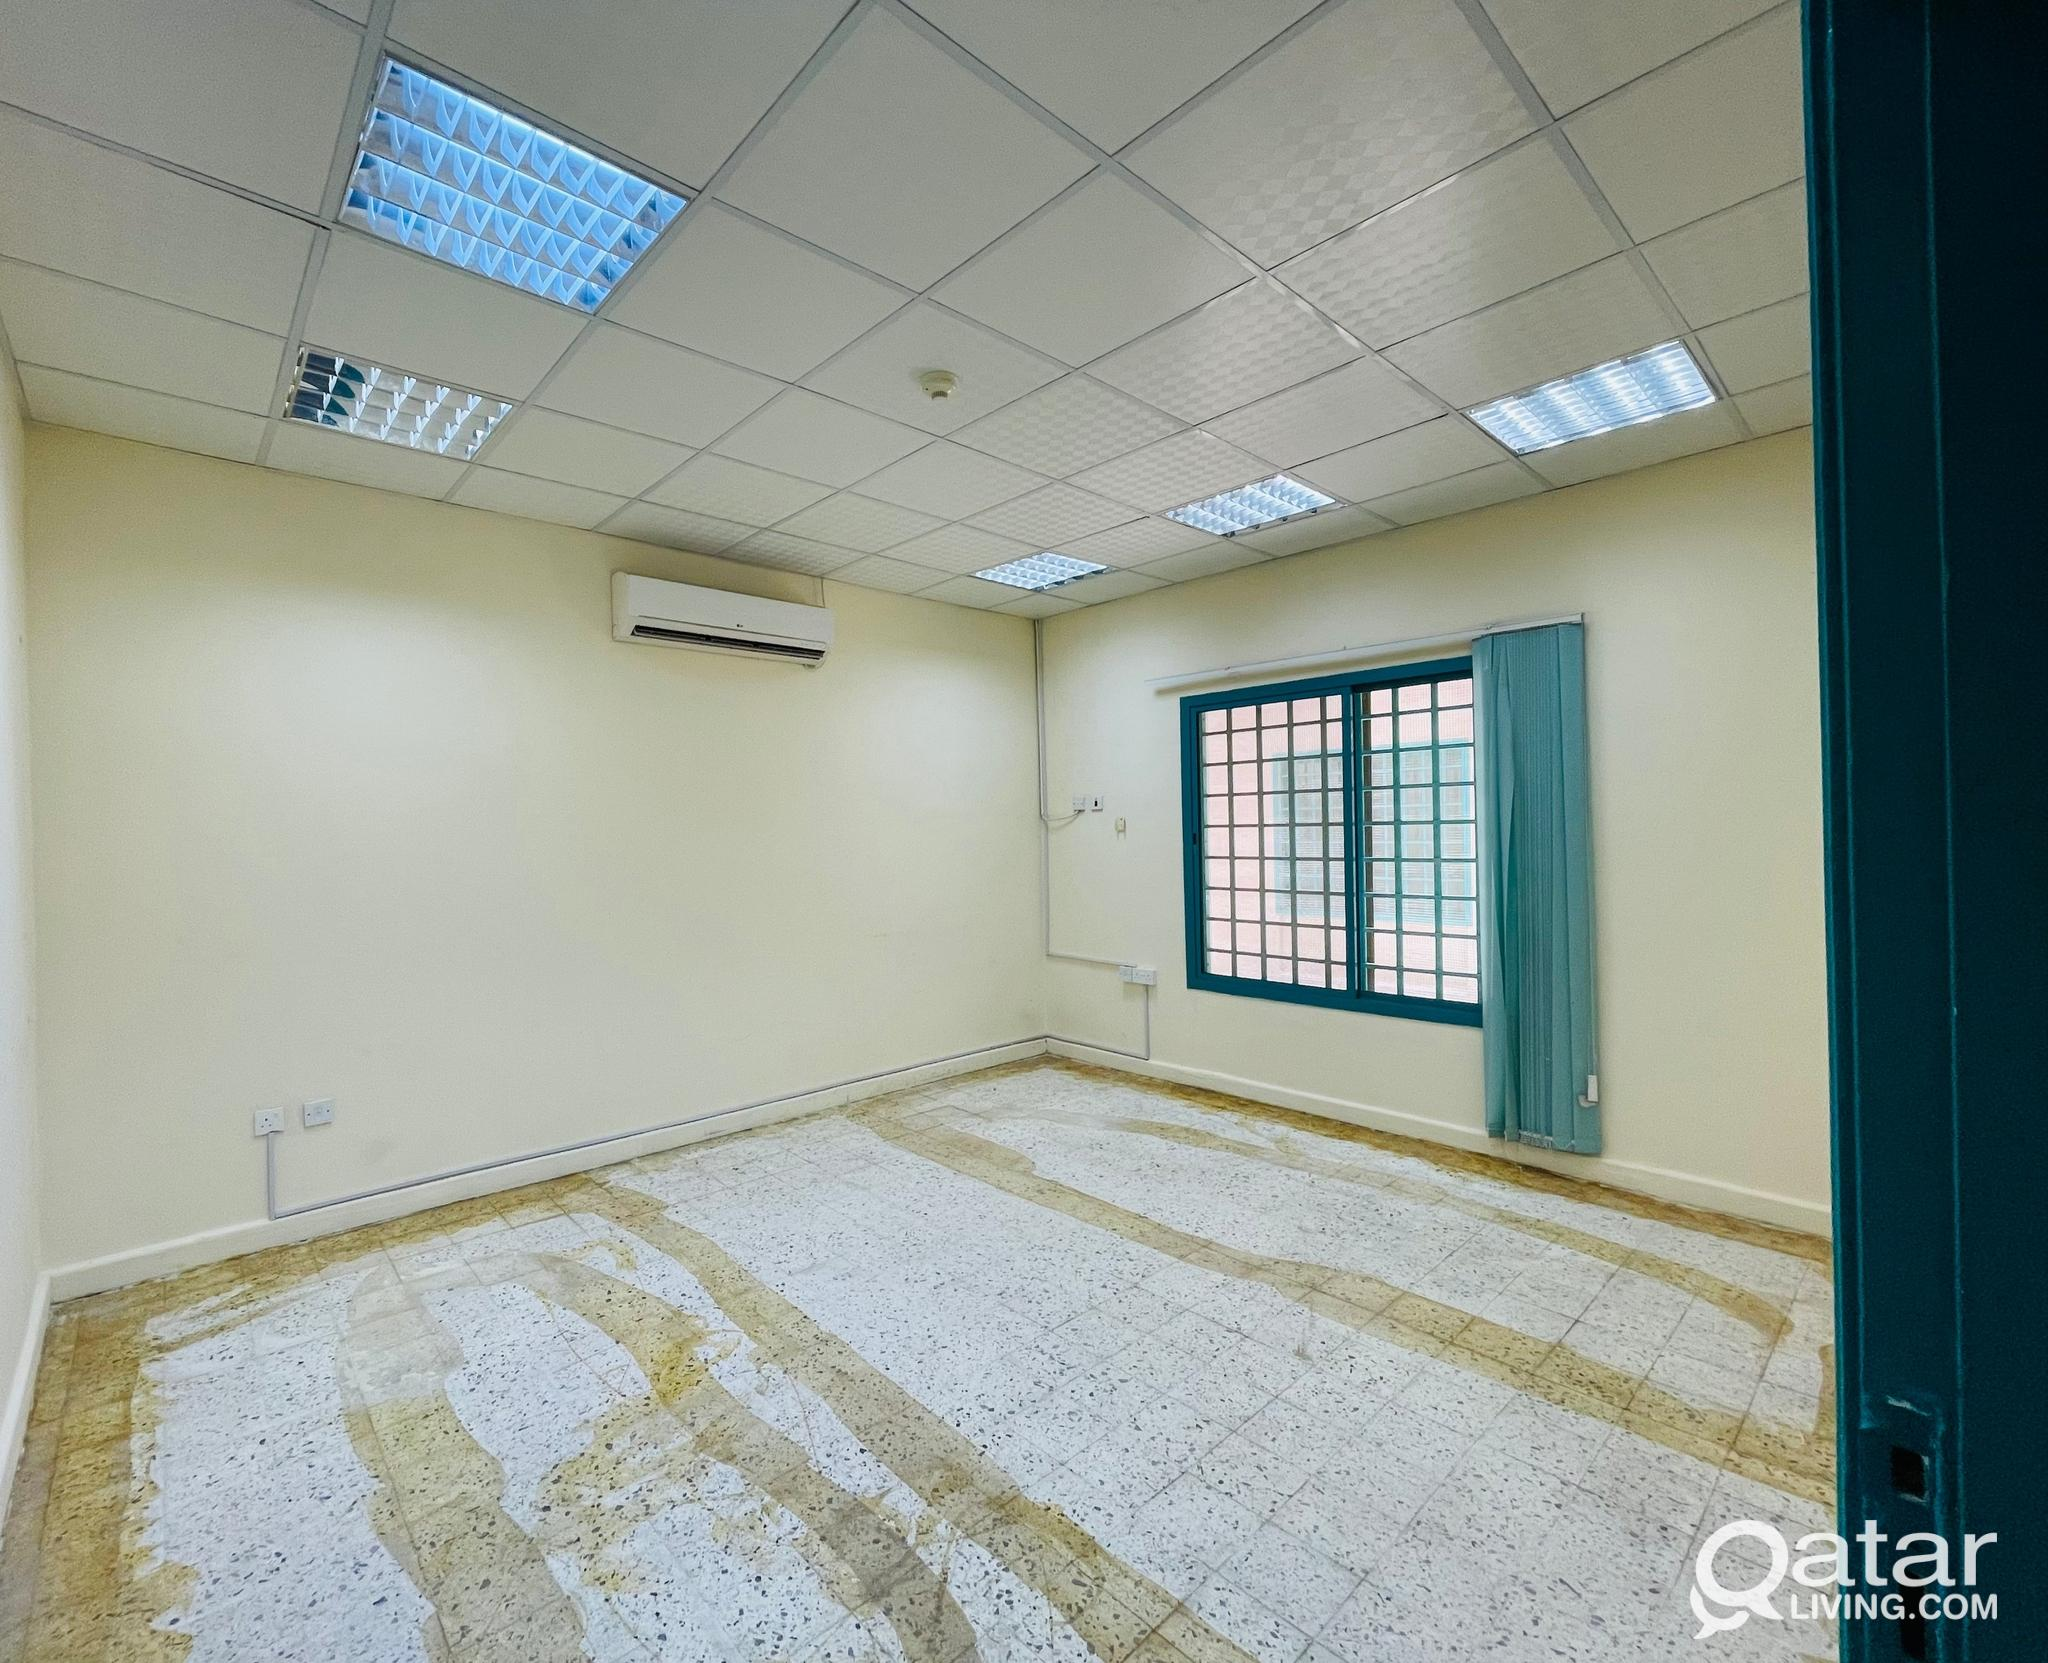 140 Square Metre partitioned office 3 bedroom with